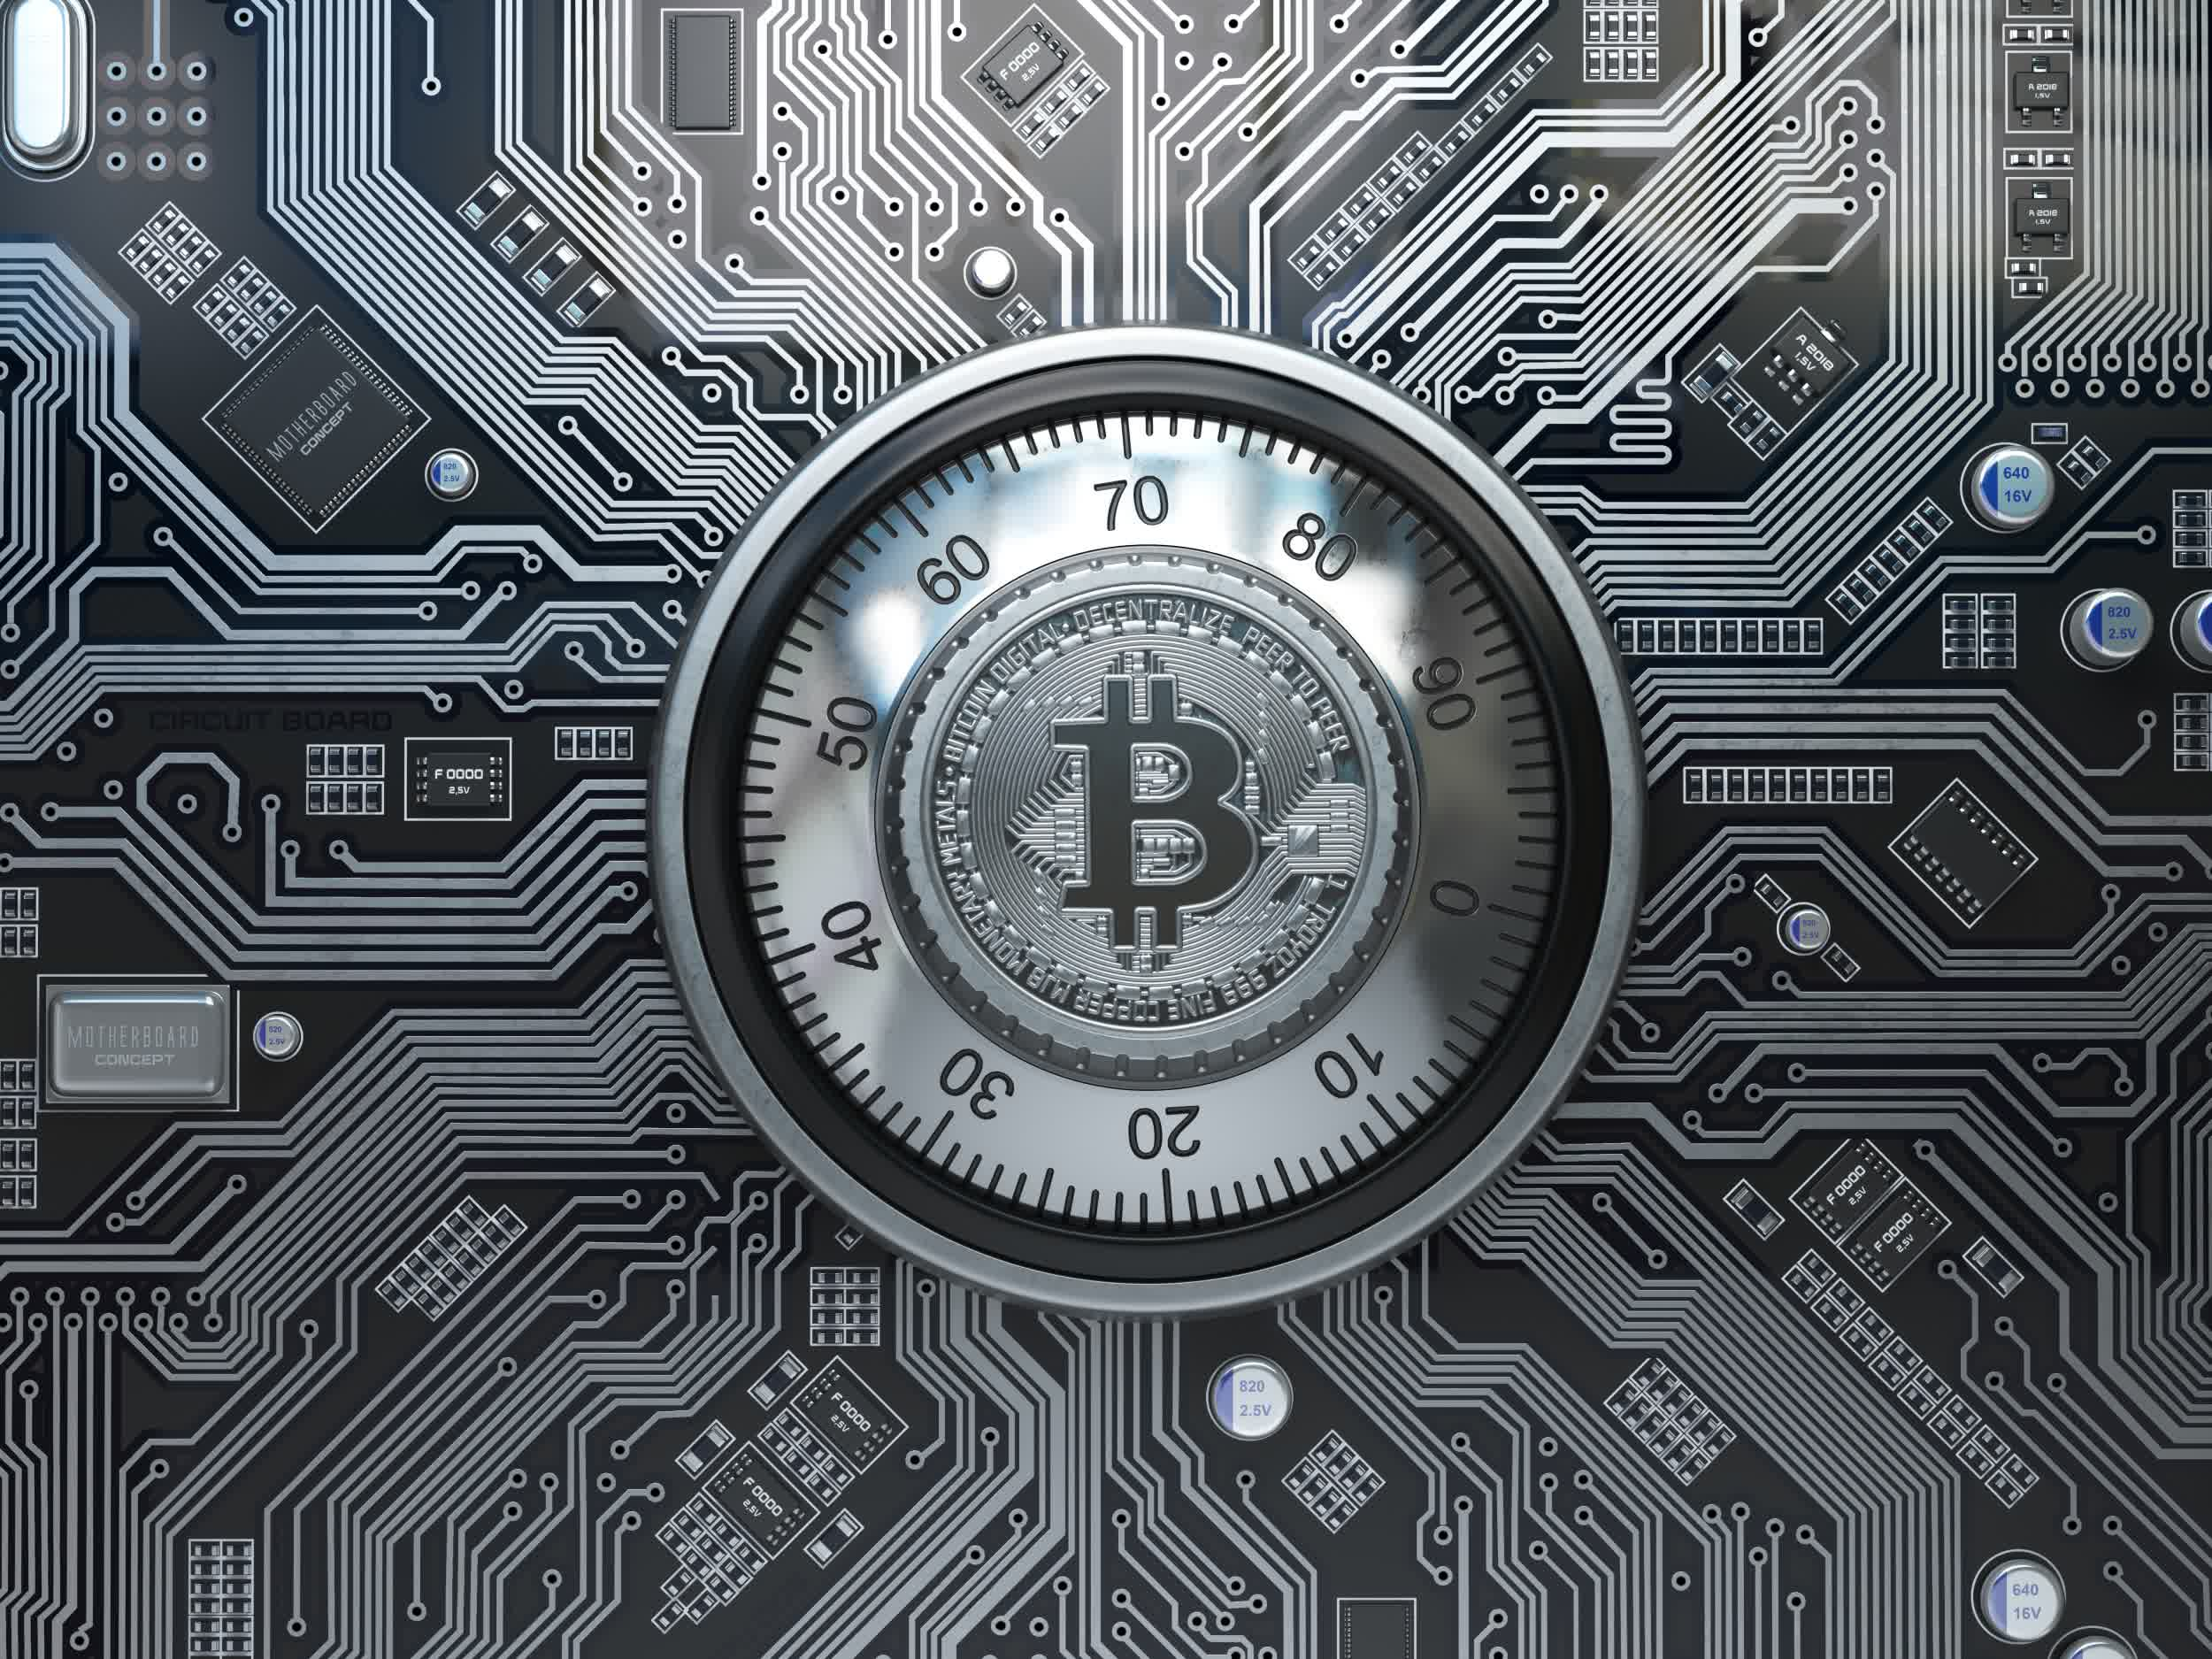 PayPal is acquiring crypto security firm Curv to help keep digital currencies safe